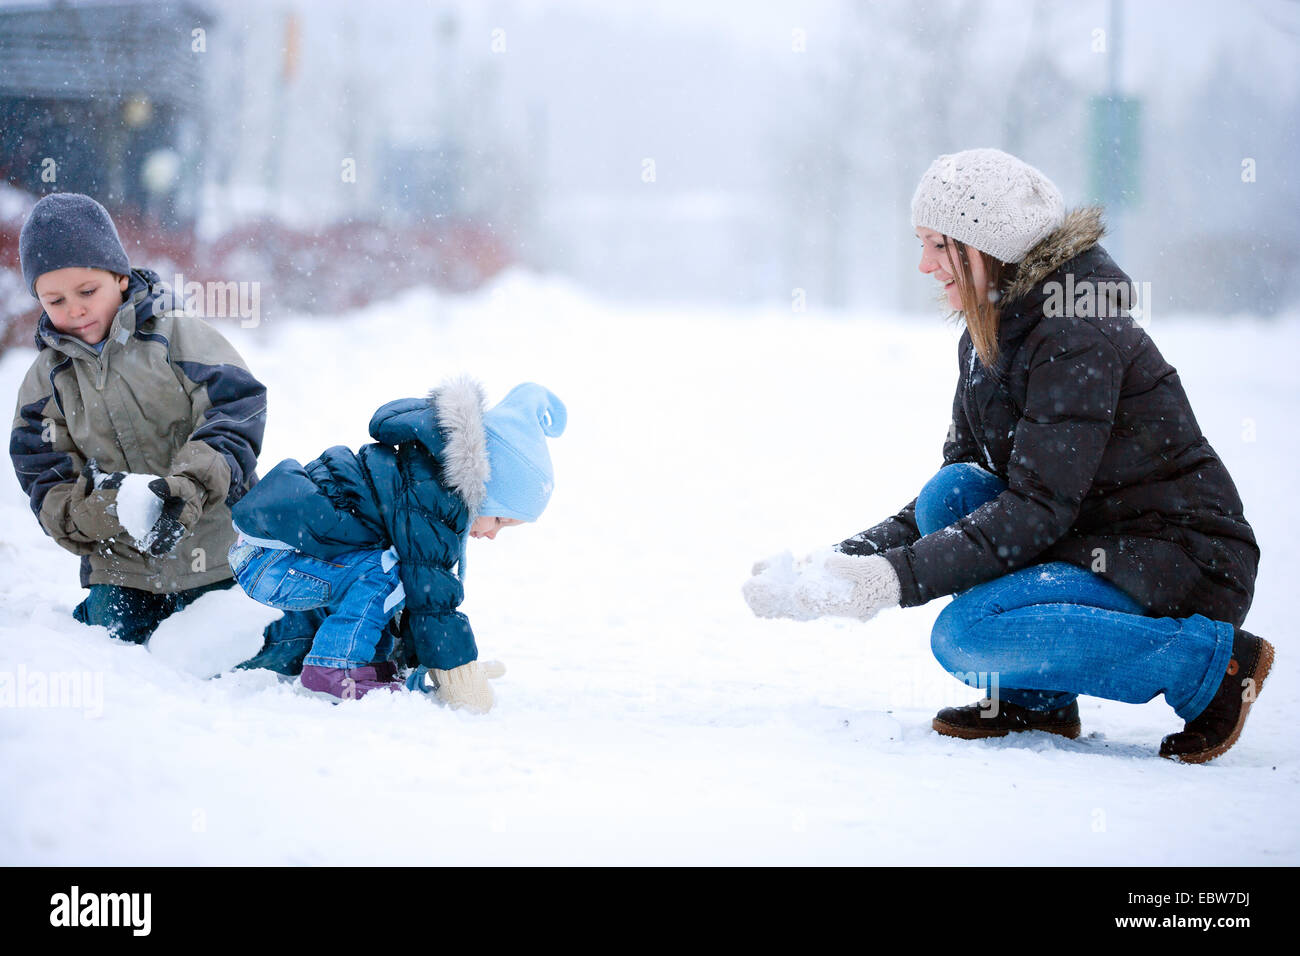 a mother playing with her two little children in snow - Stock Image